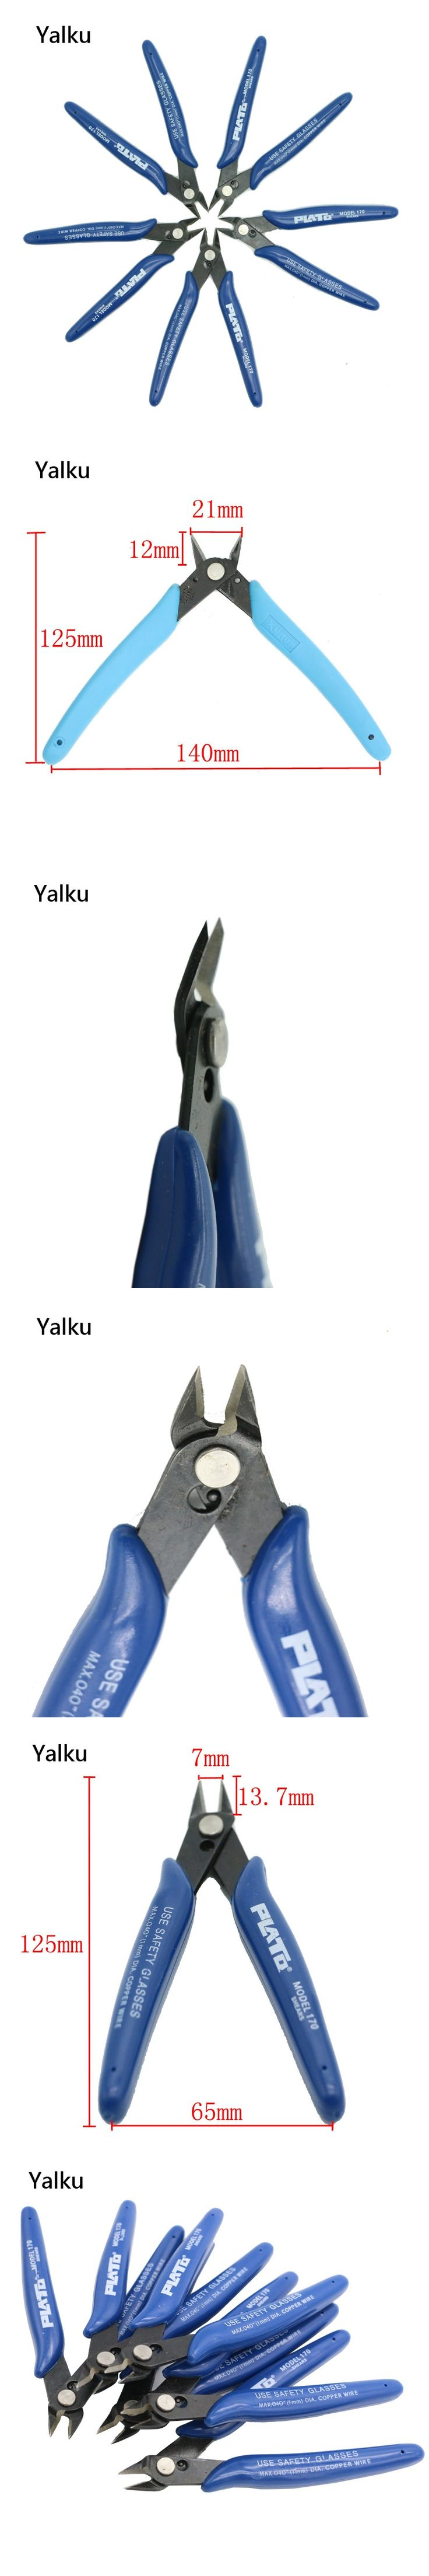 Yalku Pliers Hand Tools Plier Tool Electrical Wire Cable Cutters Cutting Side Pliers Wire Cable Cutters Stainless Steel Tool